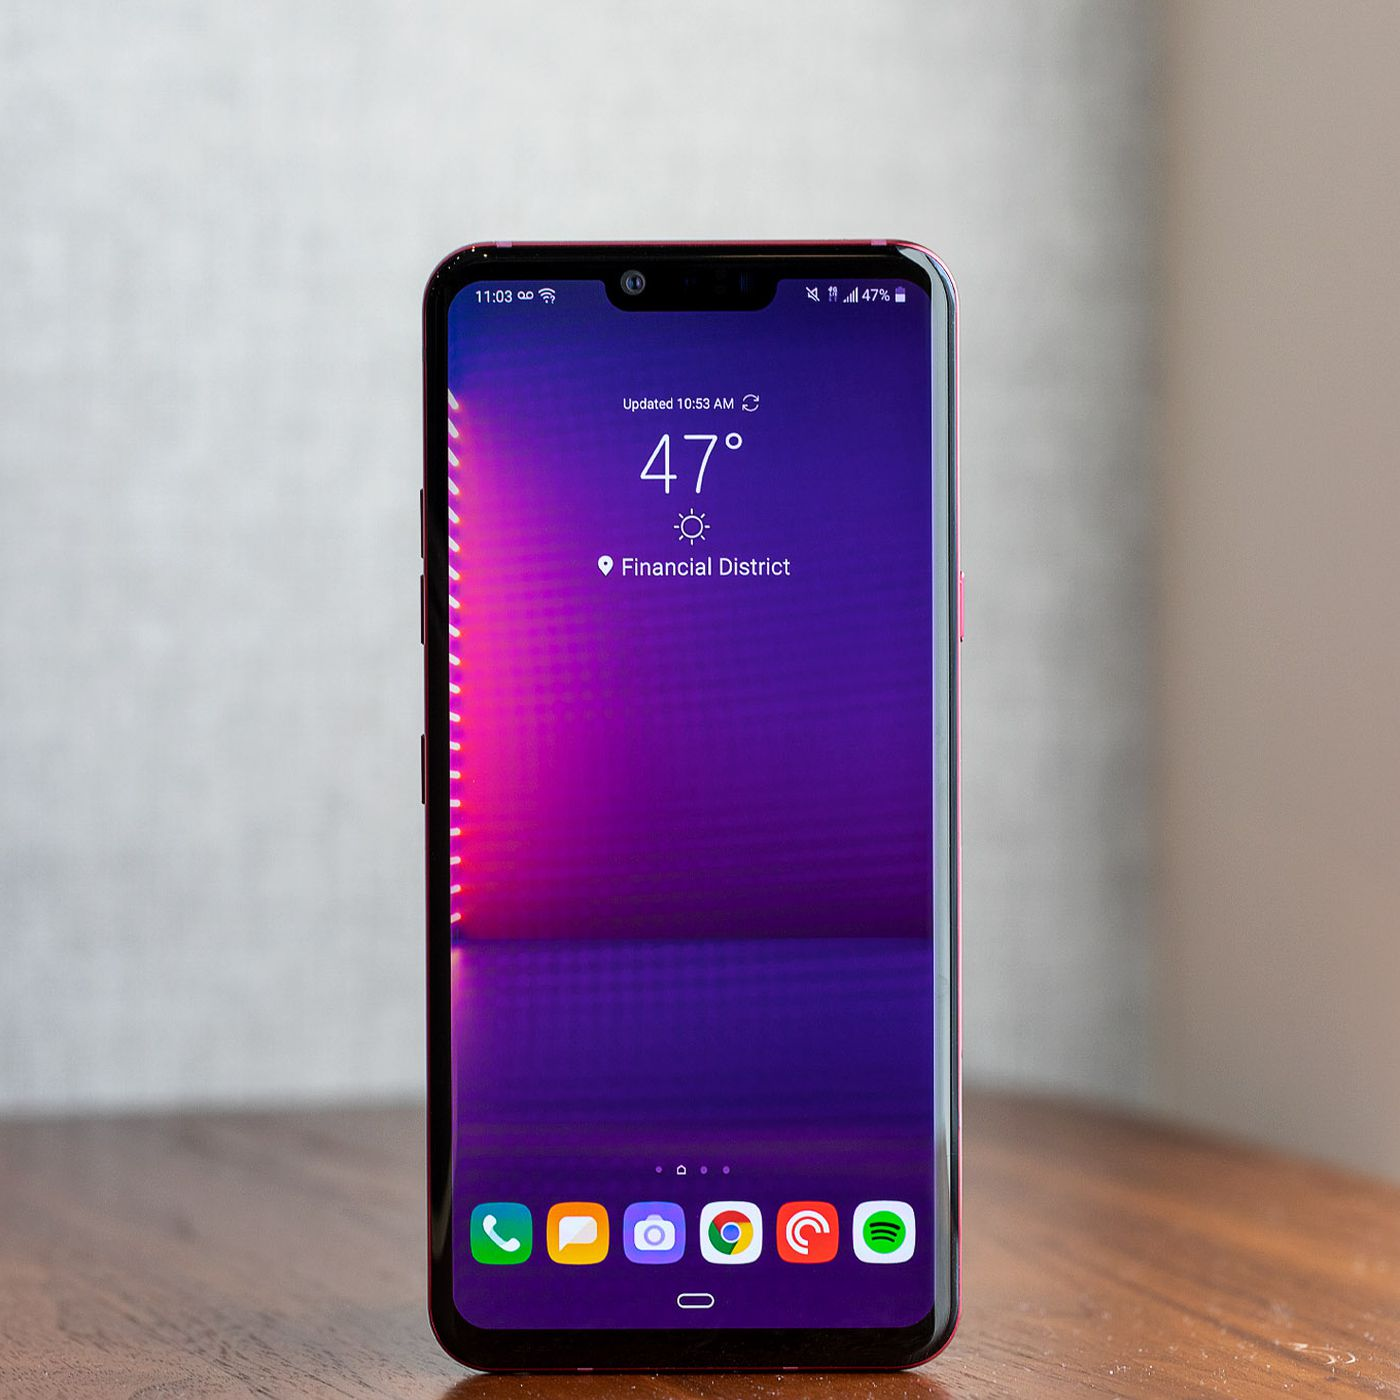 LG G8 ThinQ review: many gimmicks, not enough progress - The